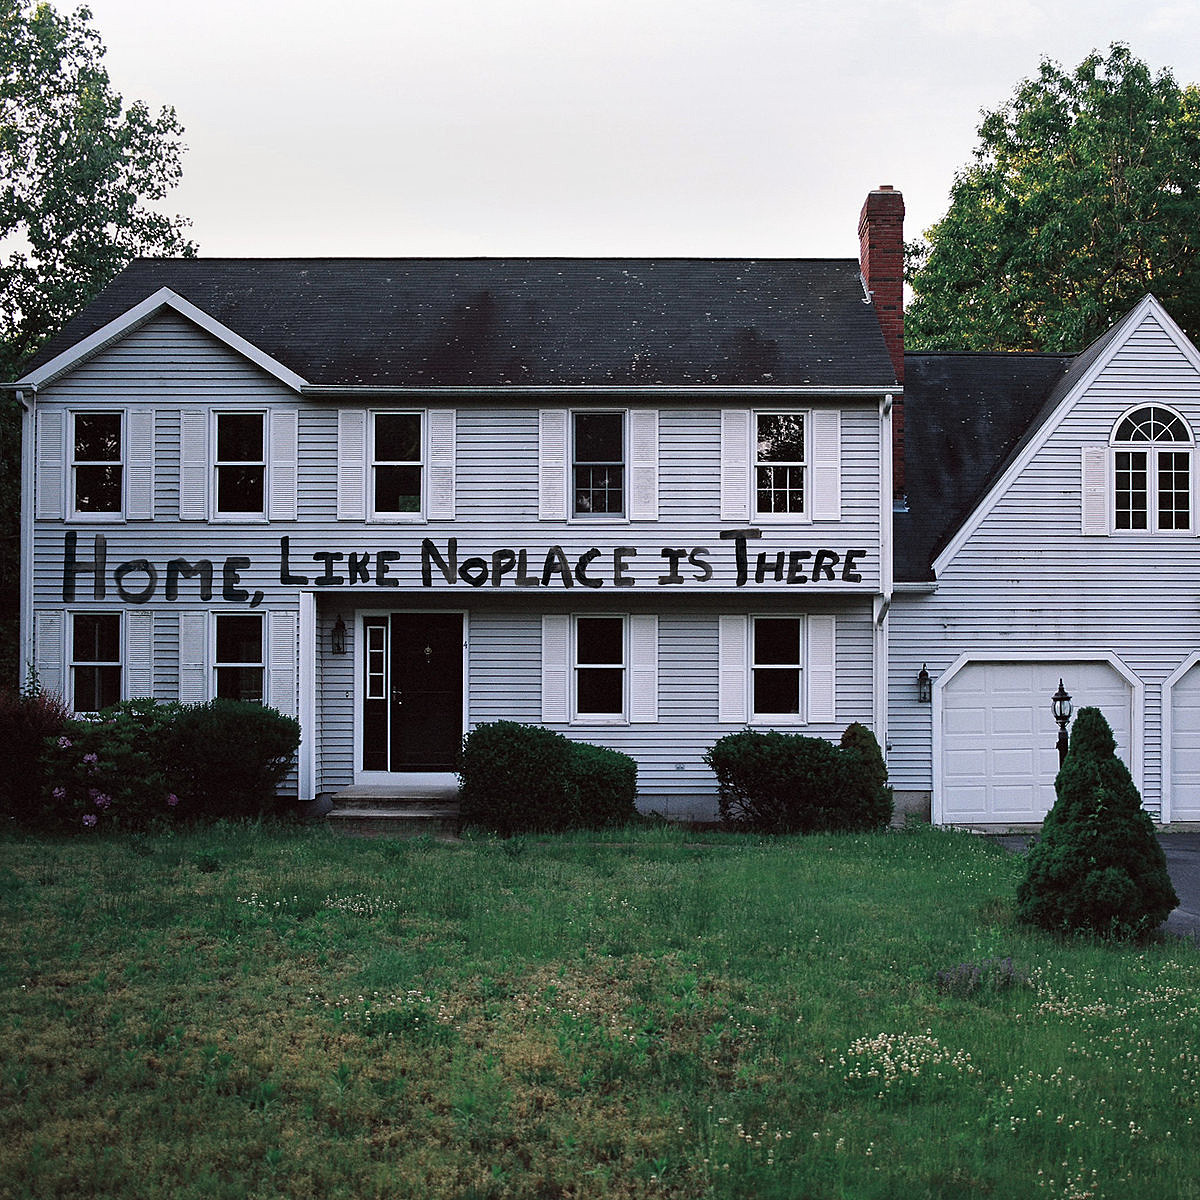 Hotelier Noplace